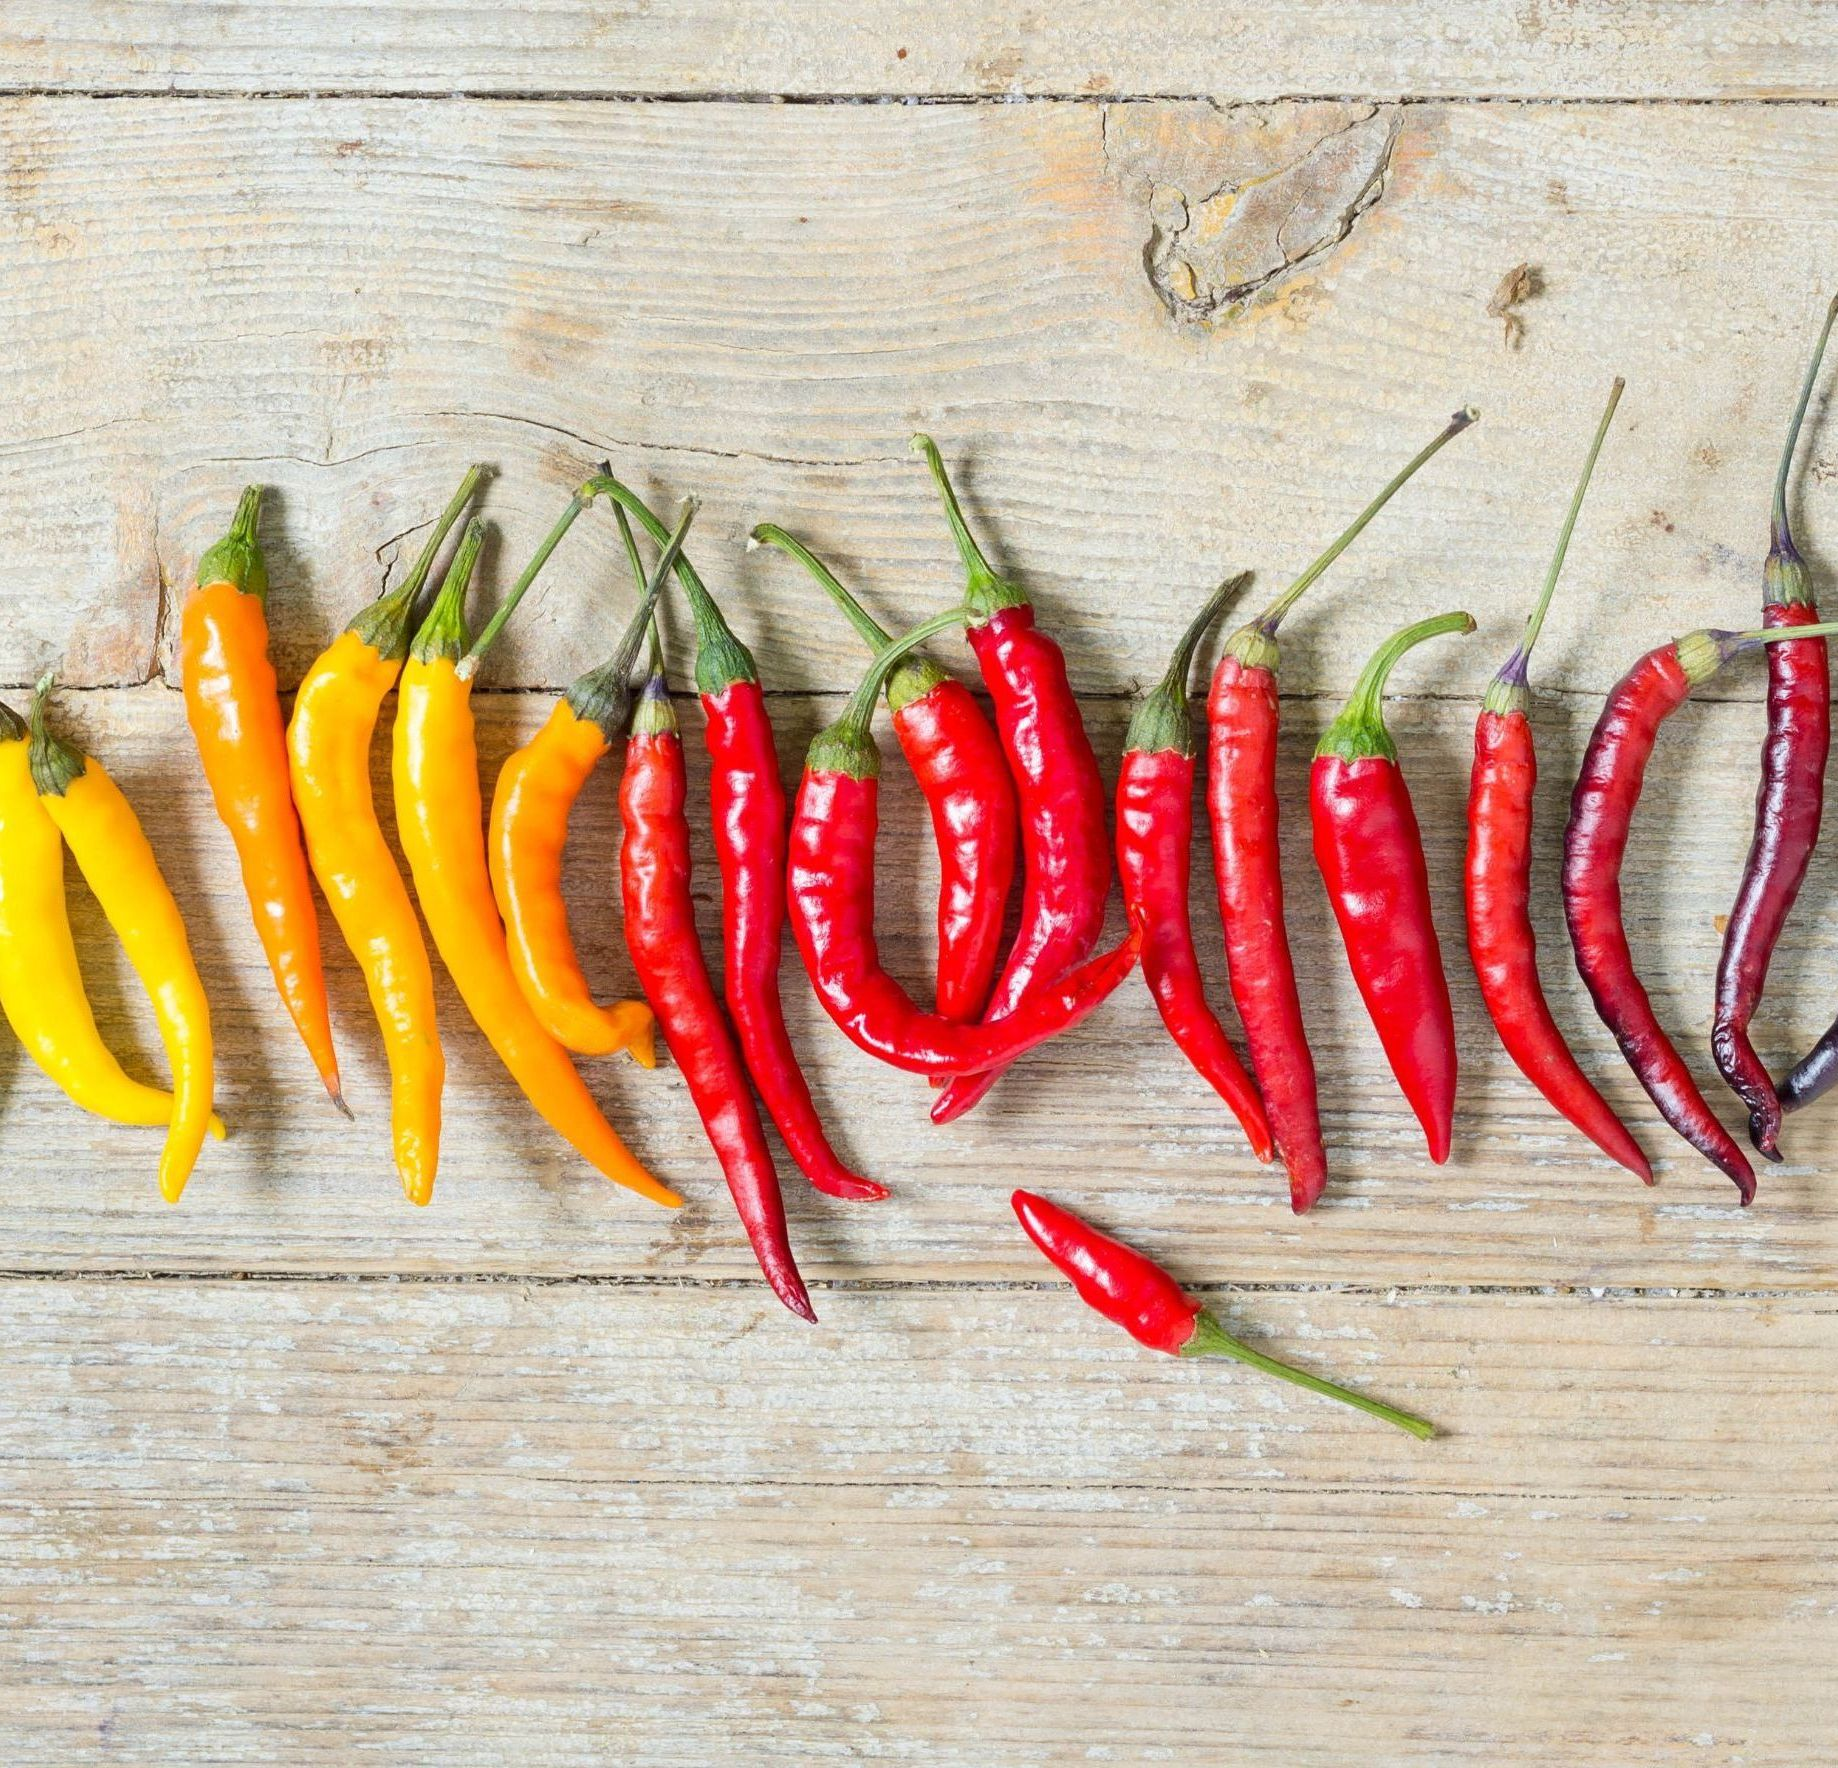 Chili Peppers Scoville Rankings